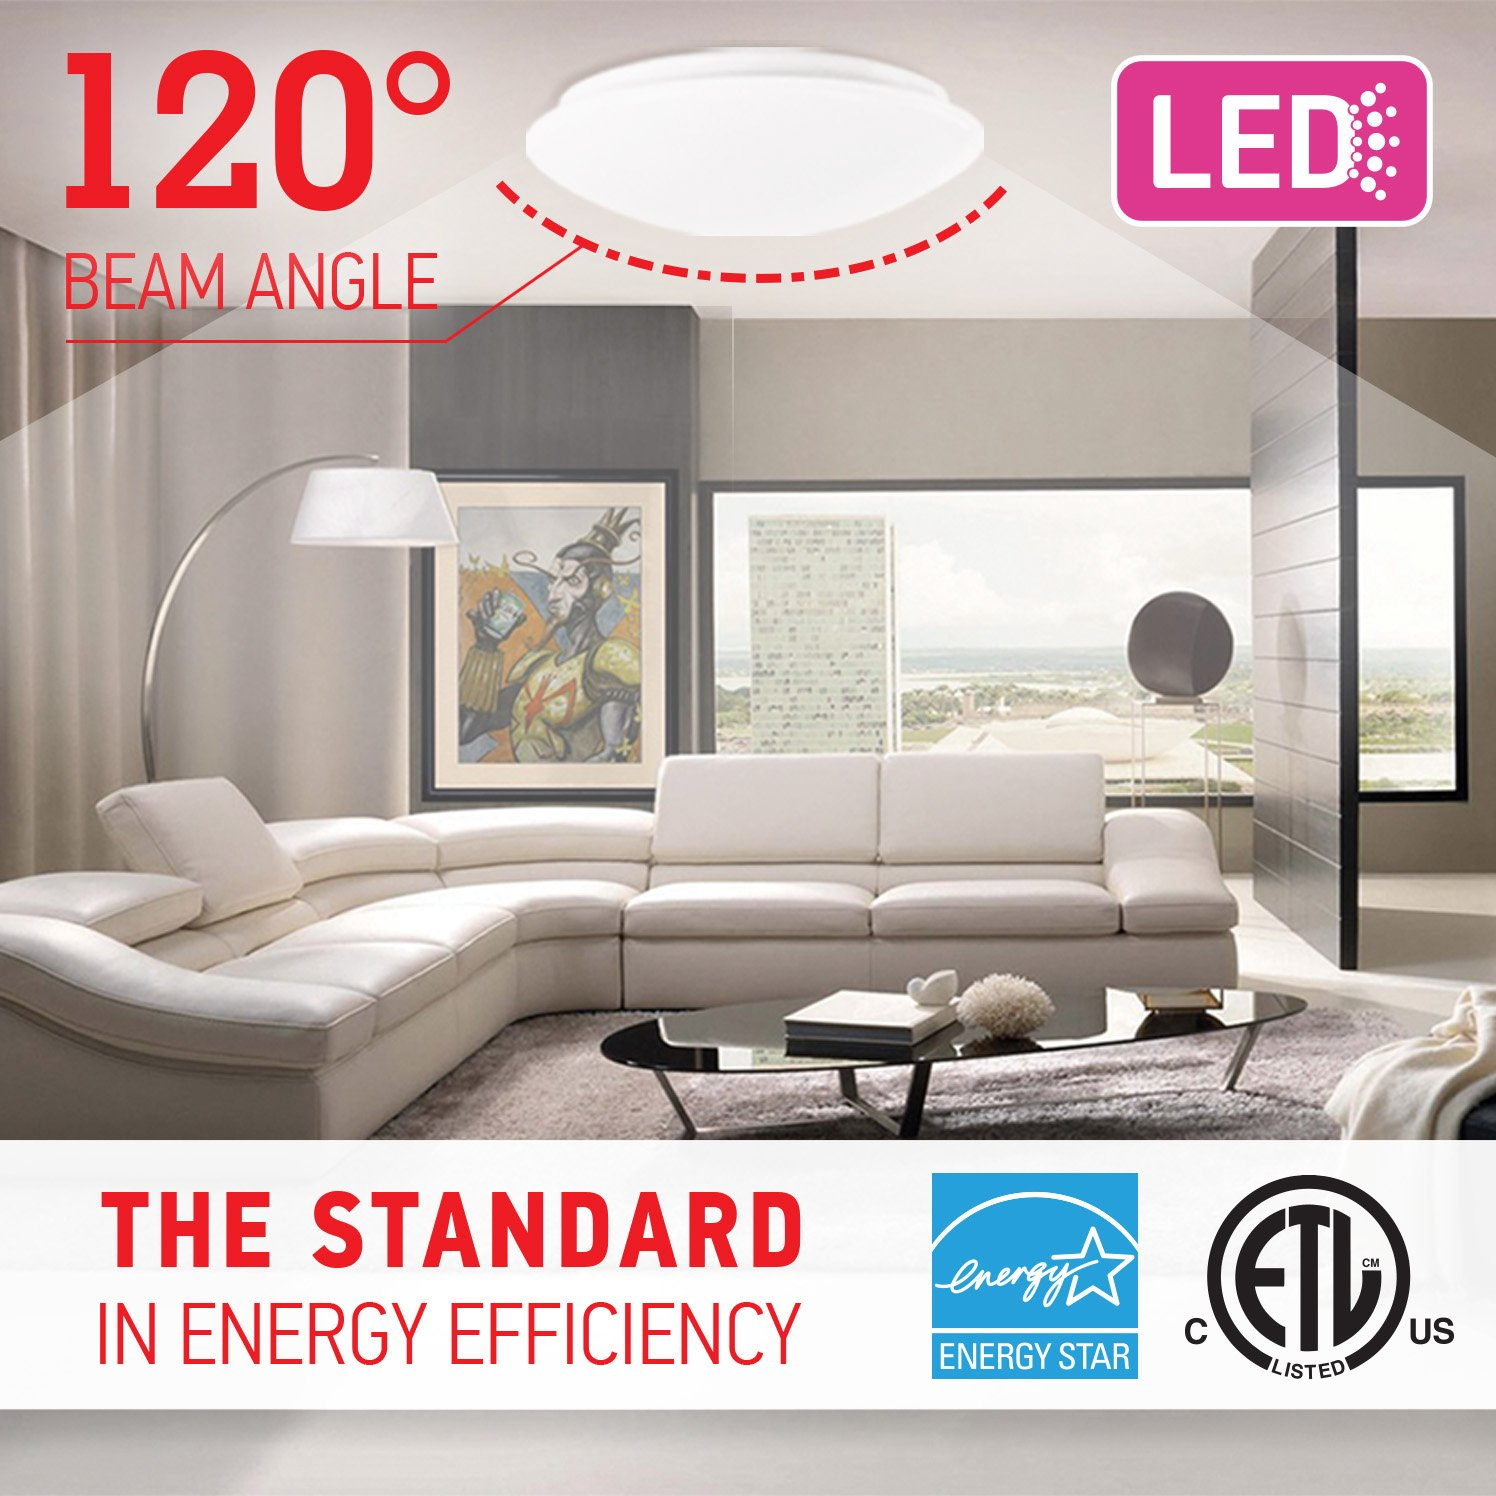 OSTWIN 11-inch LED Flush mount Ceiling Light MS Series 20W (100 Watt equivalent), Dimmable, 5000K (Daylight), 1864 Lumens, White Finish with Acrylic shade, ETL and ENERGY STAR listed by OSTWIN (Image #4)